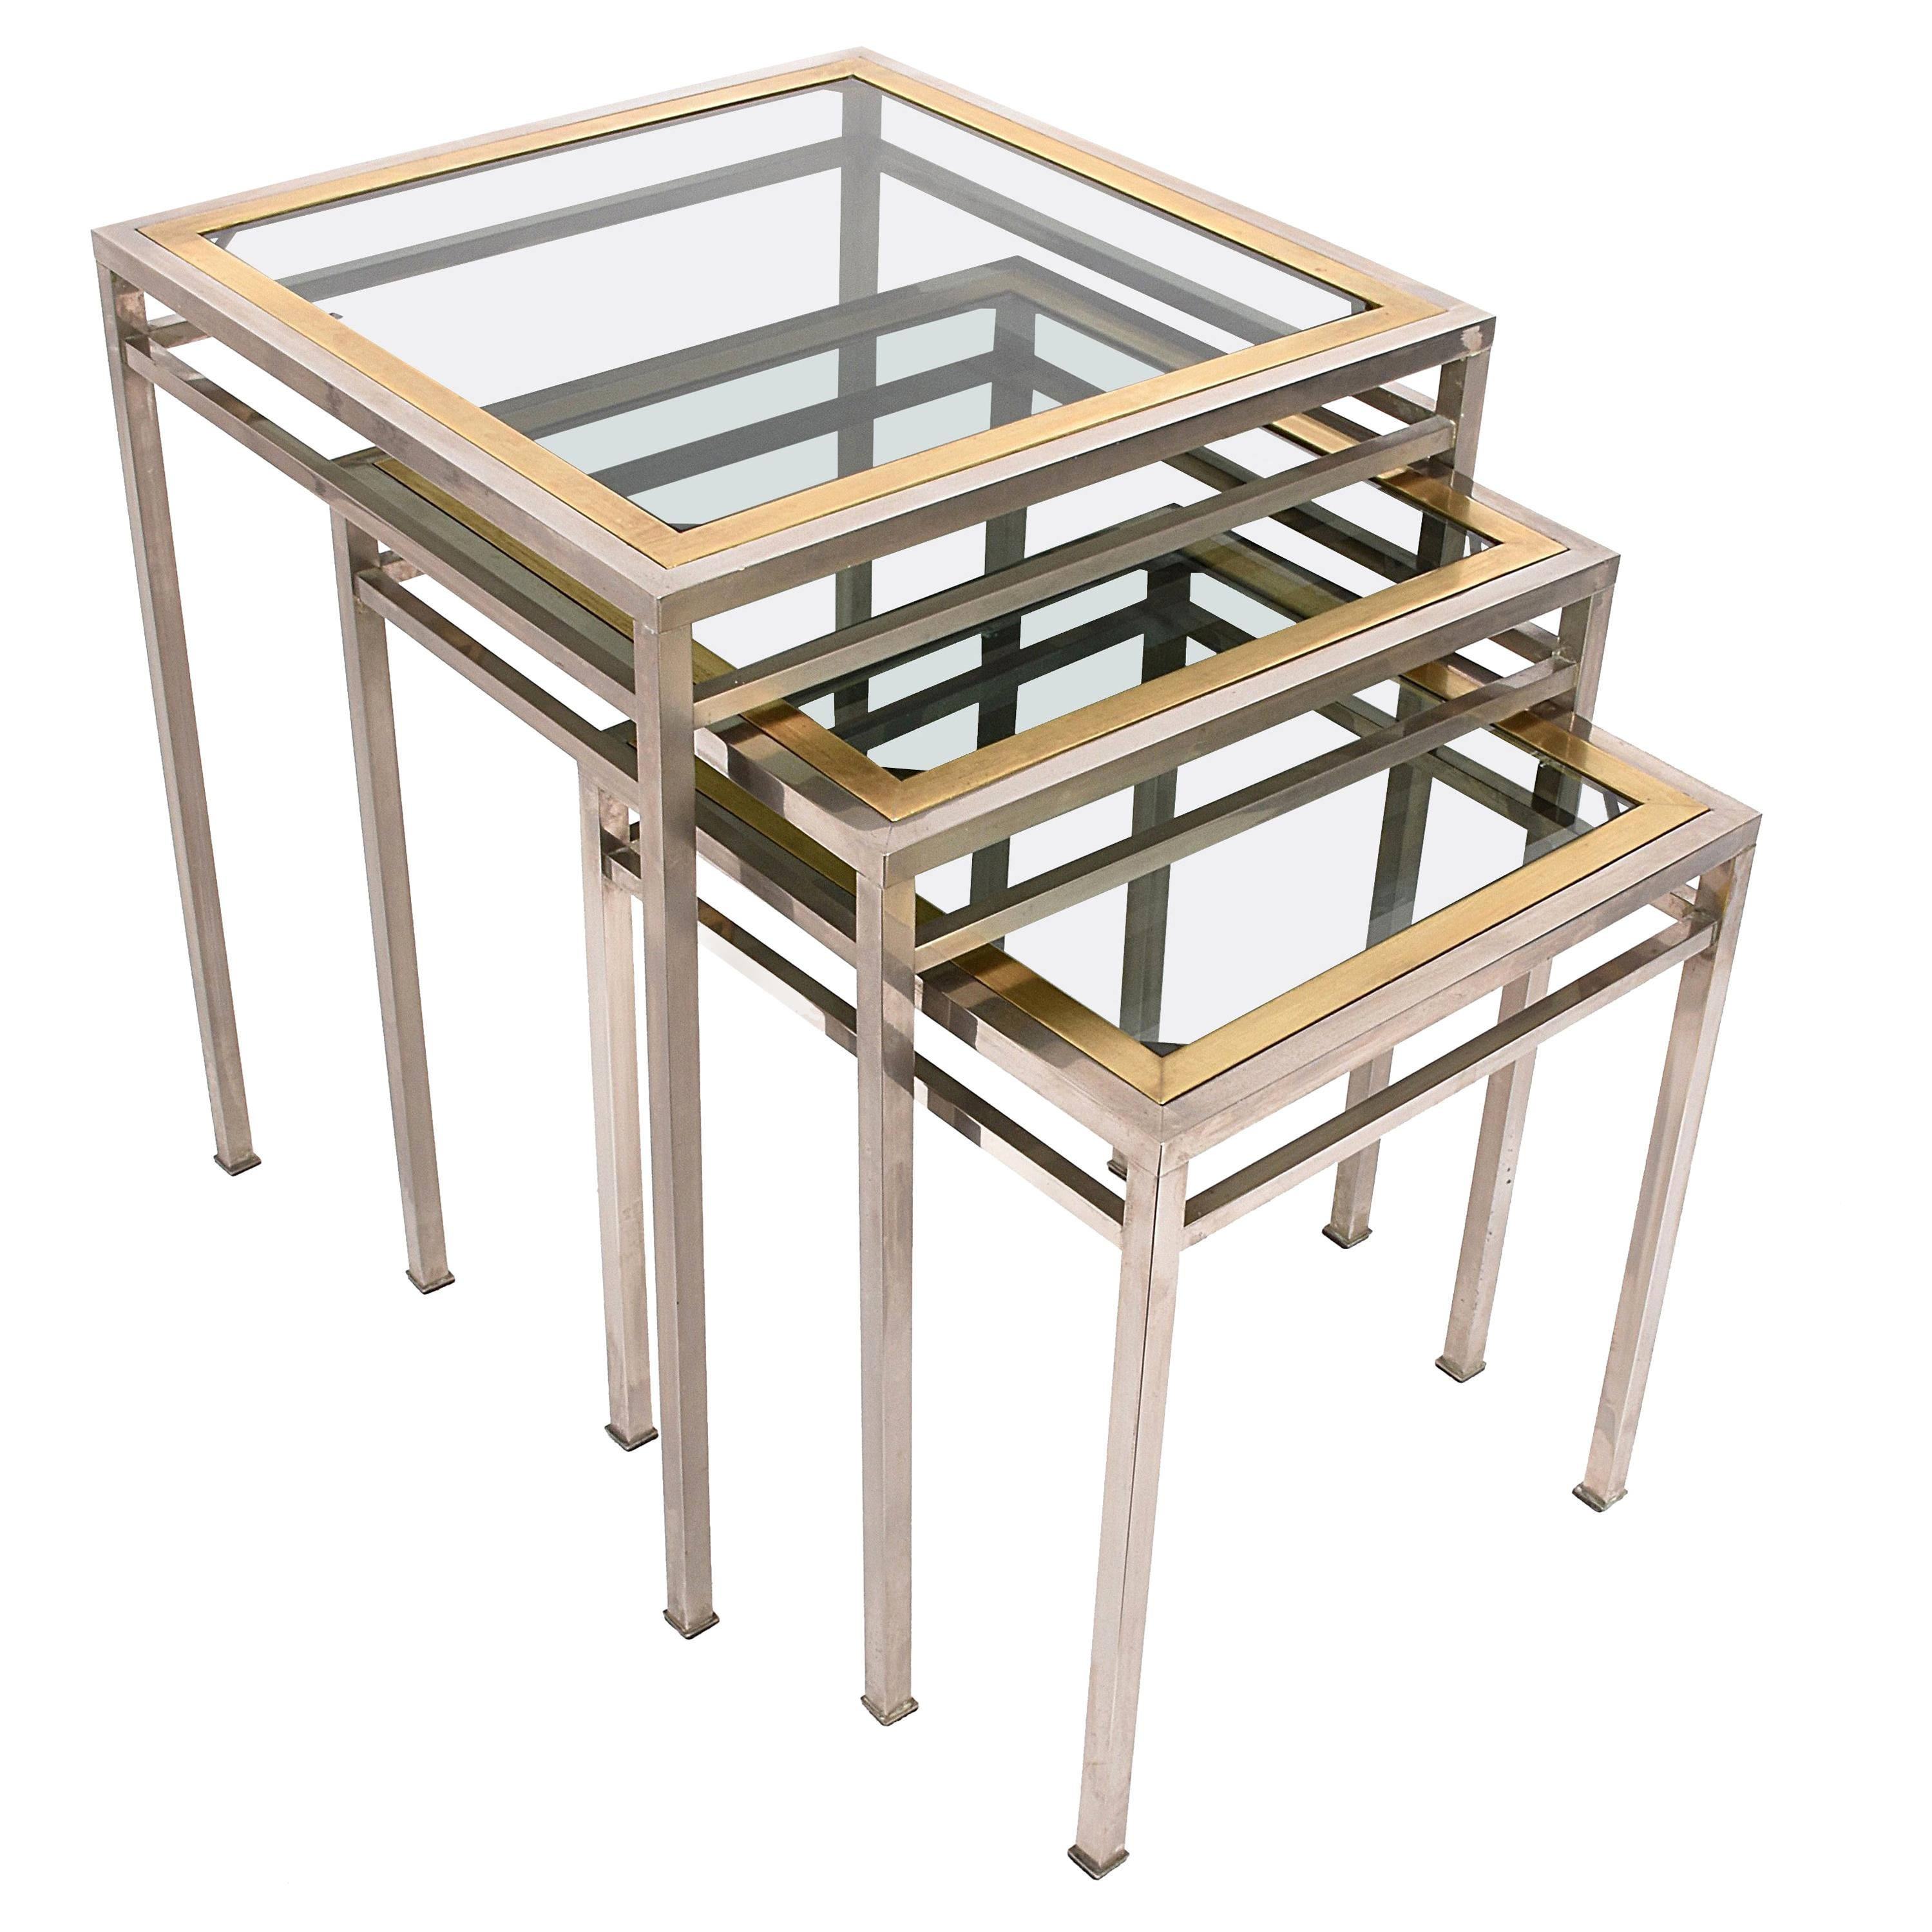 Midcentury Metal, Brass and Smoked Glass Extractable Coffee Tables, Italy 1970s